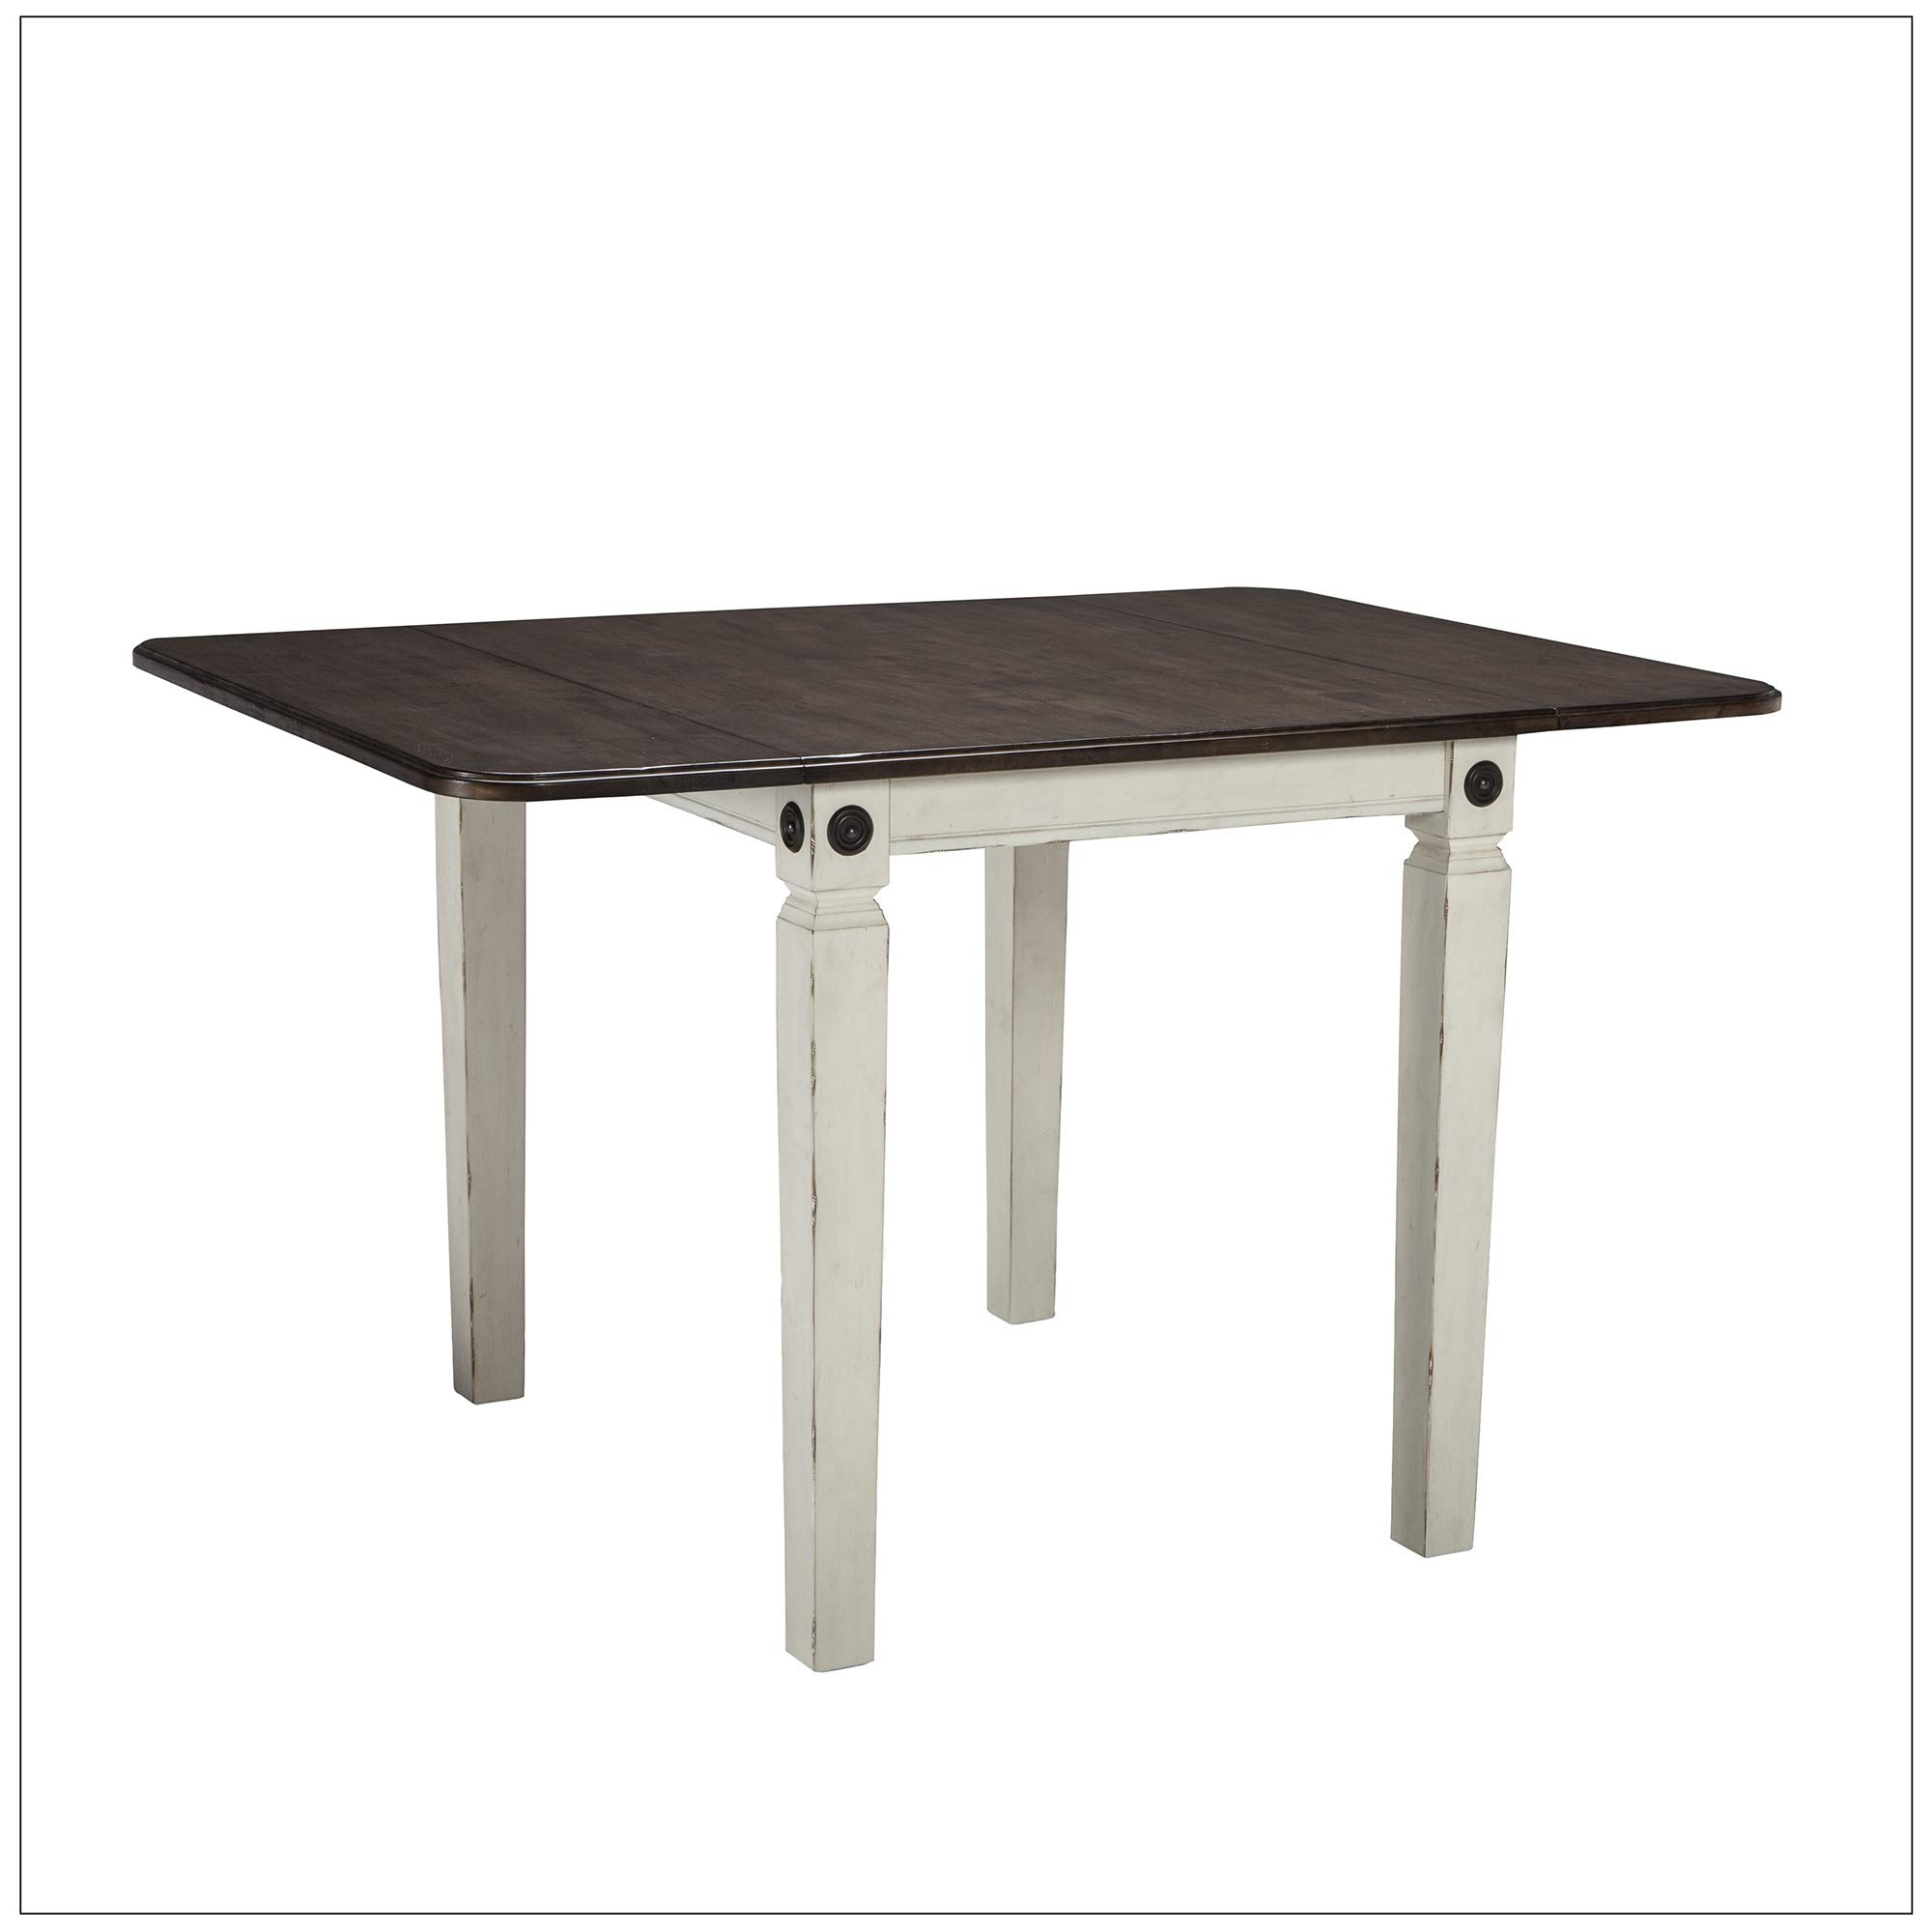 Intercon GW-TA-3650D-RWC-C Glenwood Drop Leaf Table Rubbed White Charcoal by Intercon